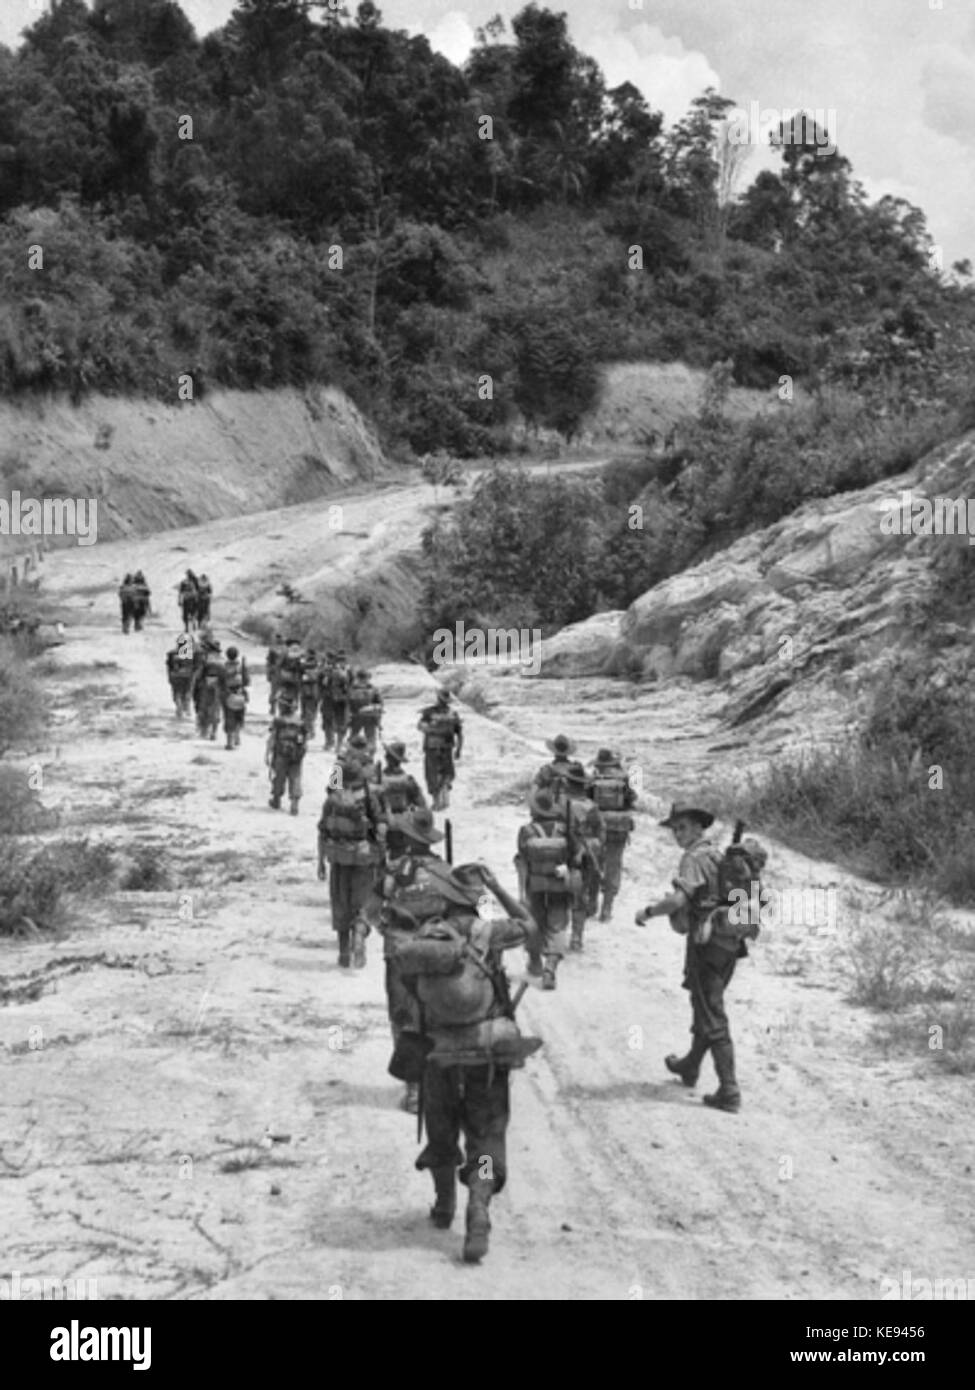 Members of B Company of the 2 2 Machine Gun Battalion moving along a road towards Brunei AWM 109273 - Stock Image